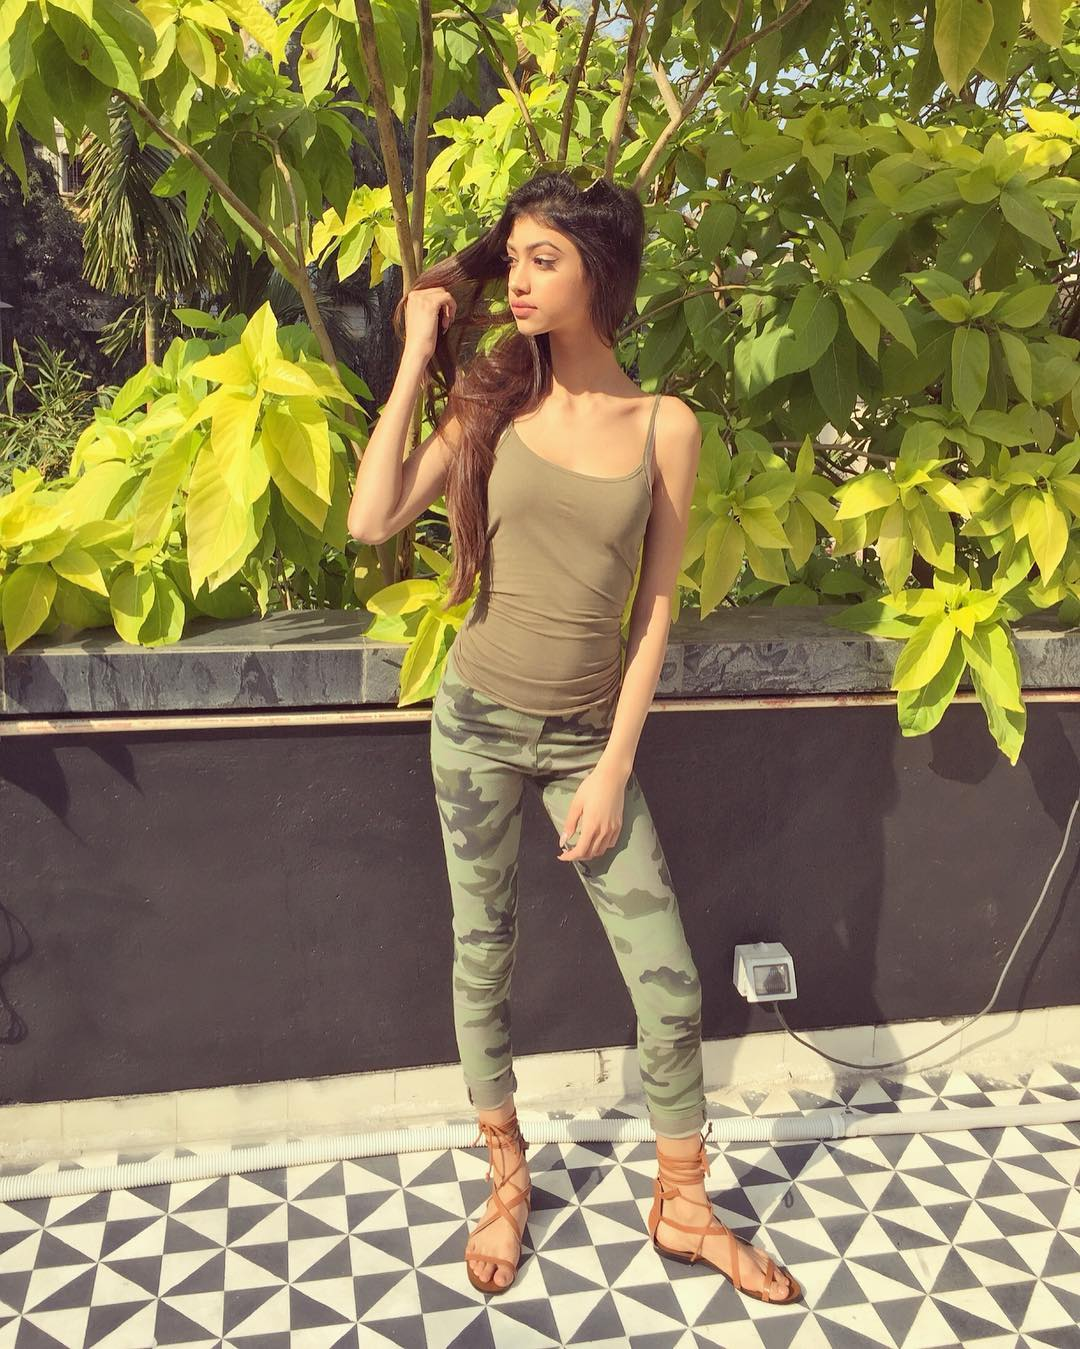 Chunky Pandey S Niece Alanna Panday Feet Wiki Bio Age Bikini Photo Image Photo Tadka Alanna panday is an indian film actress, model and celebrity based in mumbai with connection with the eminent film star chunkey panday. chunky pandey s niece alanna panday